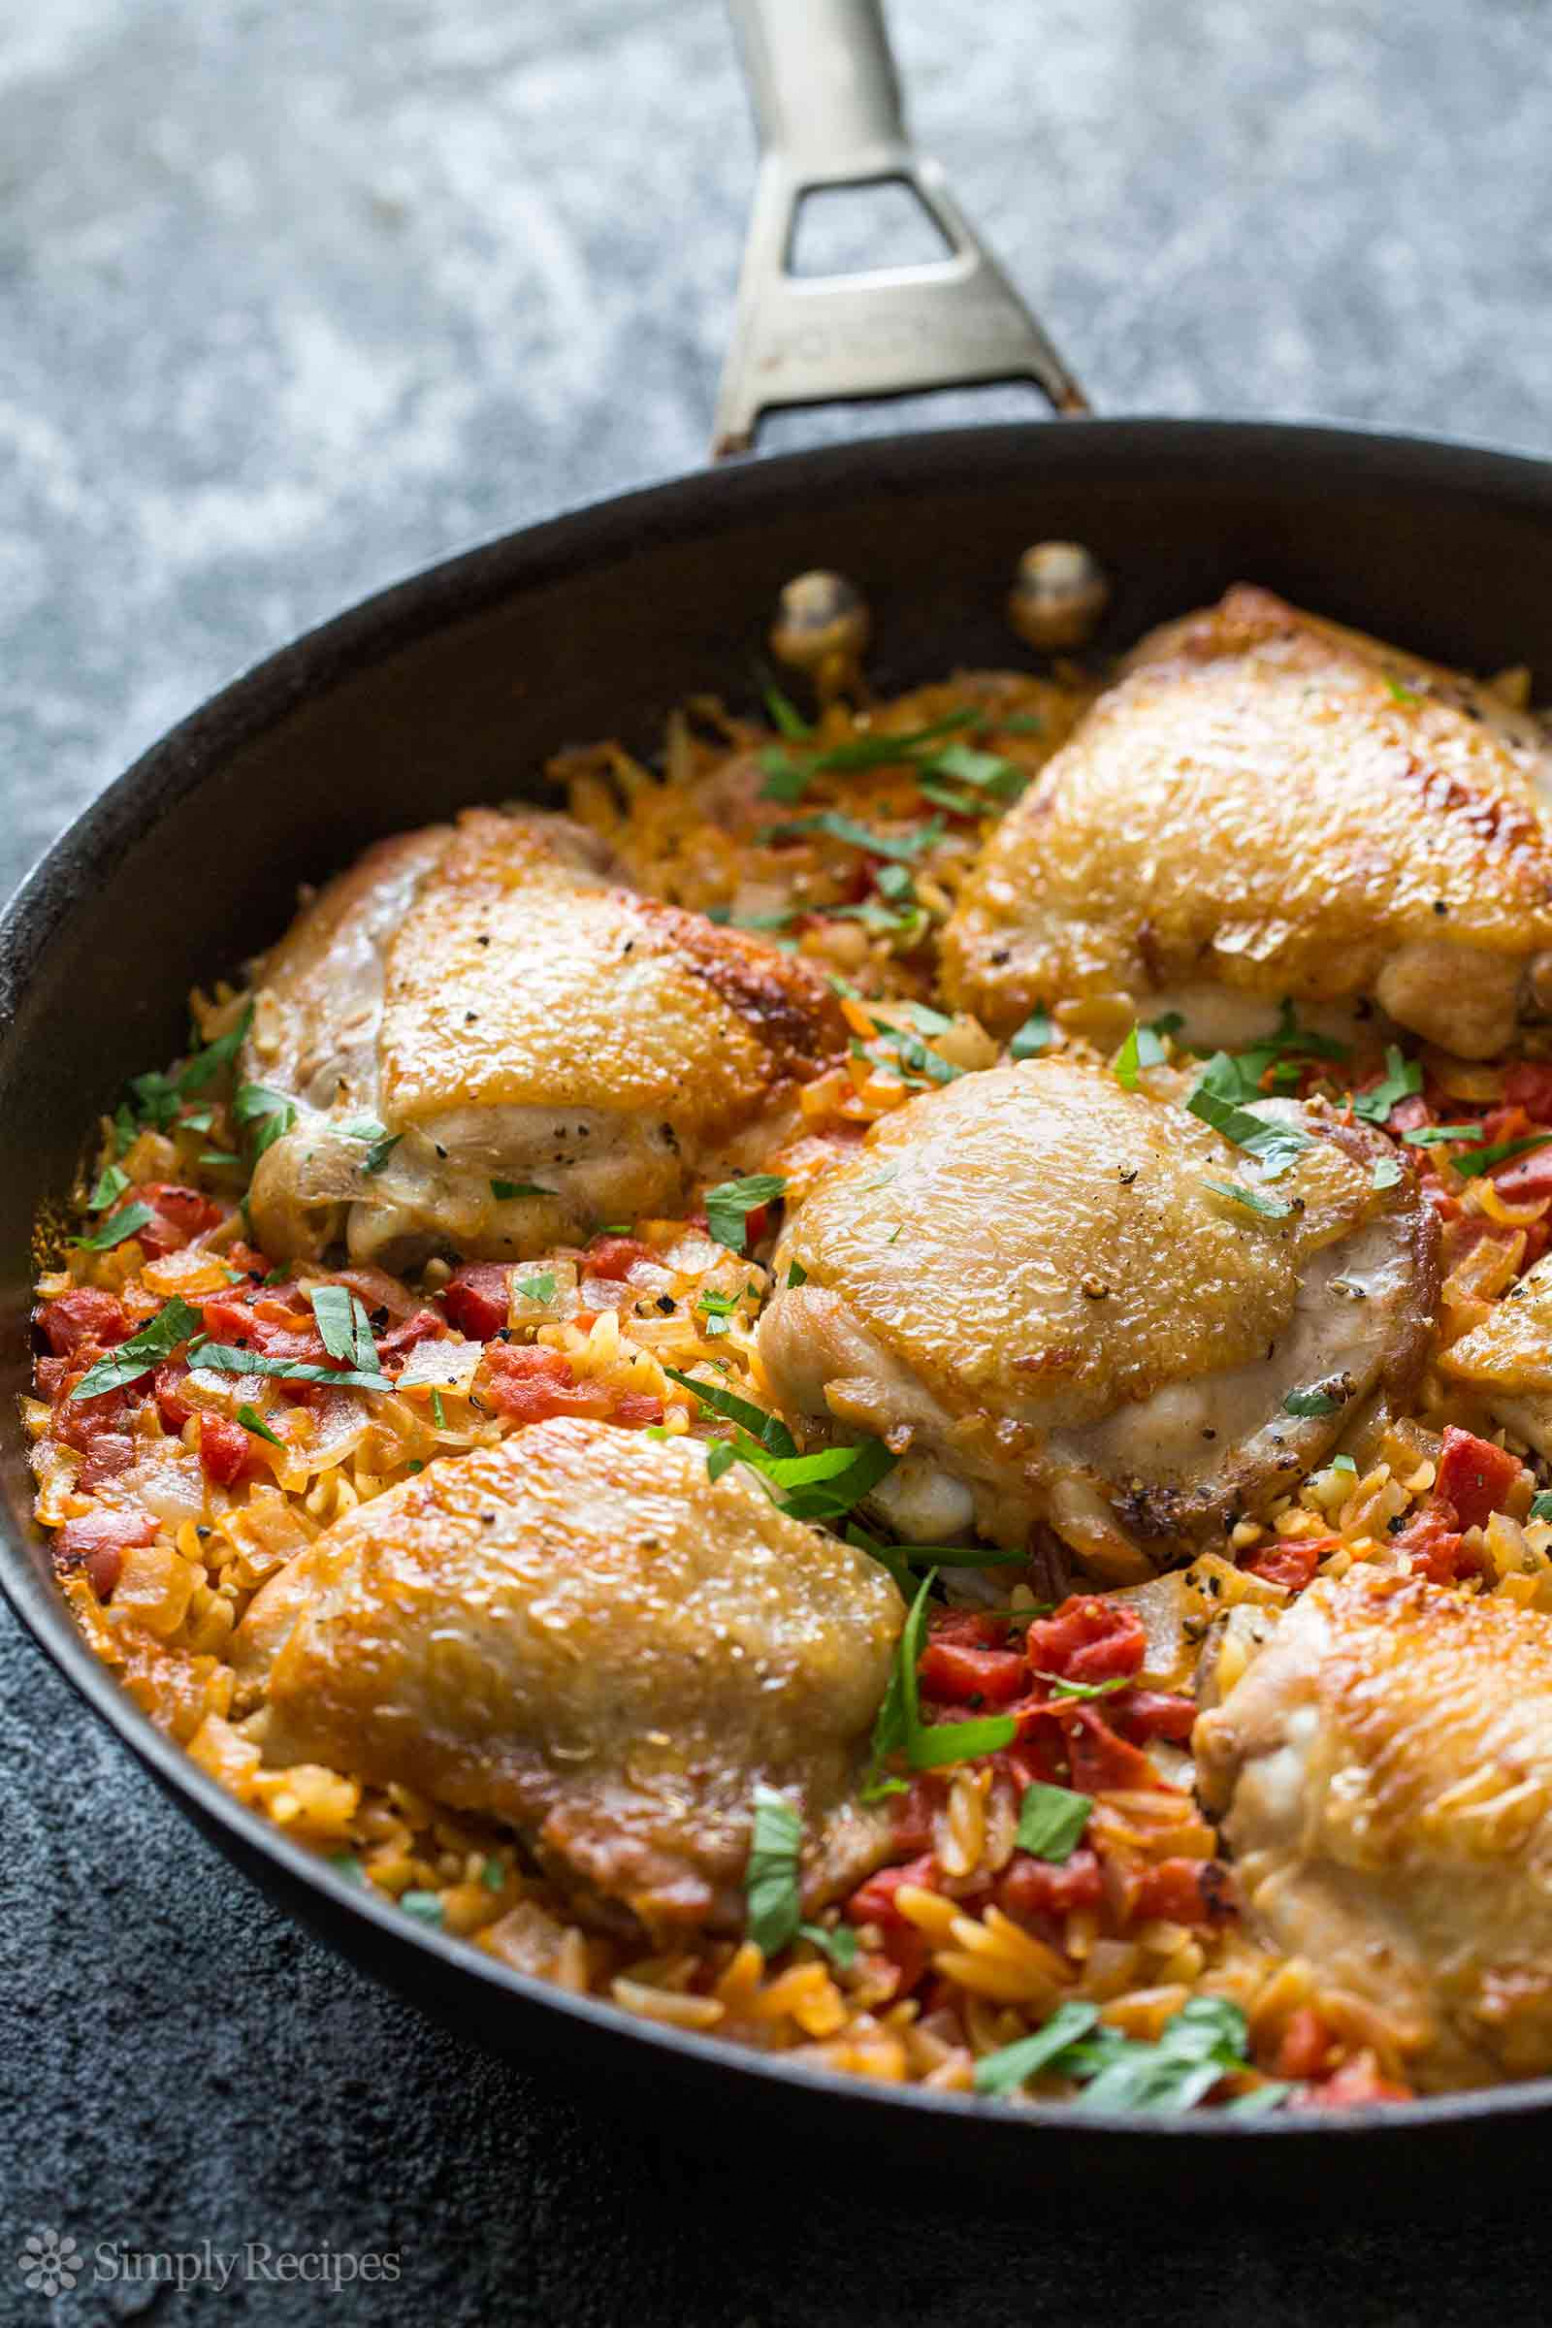 Orzo Recipes - Orzo Recipes Chicken